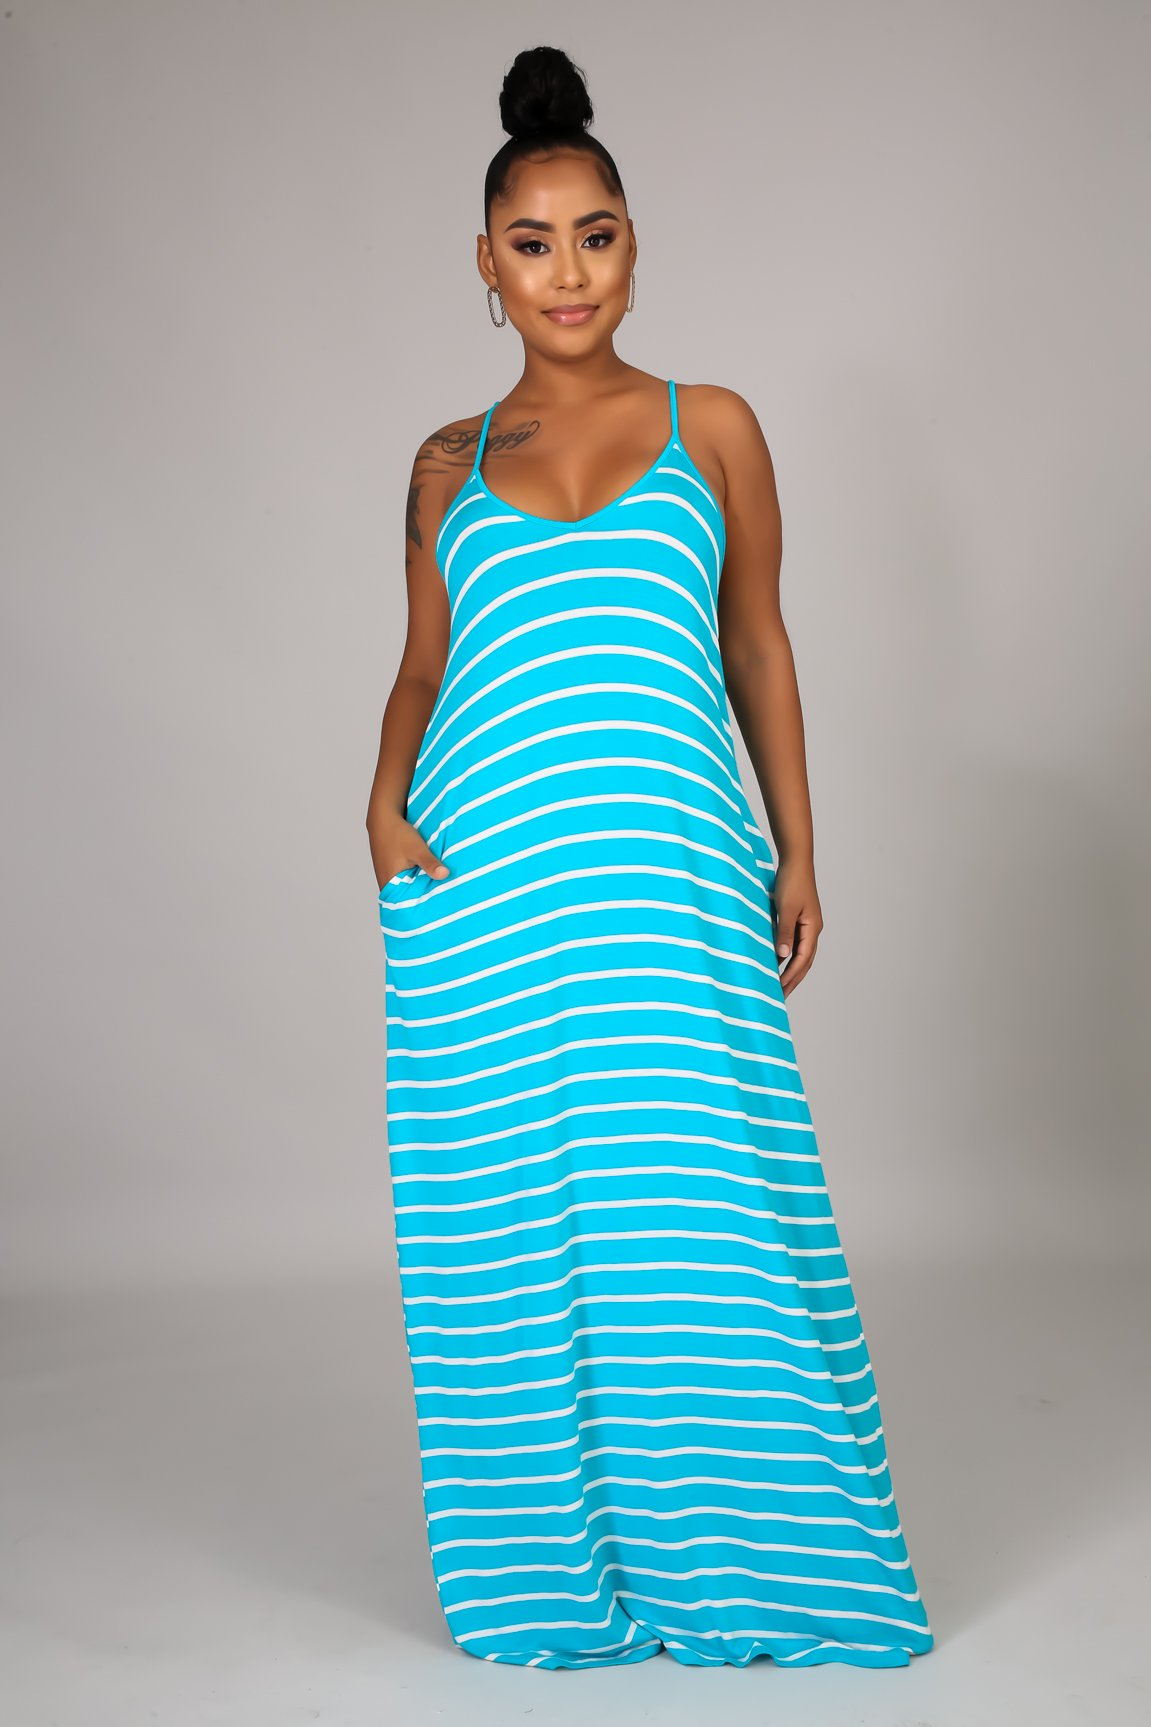 Go Crazy Maxi Dress - Ice Blue